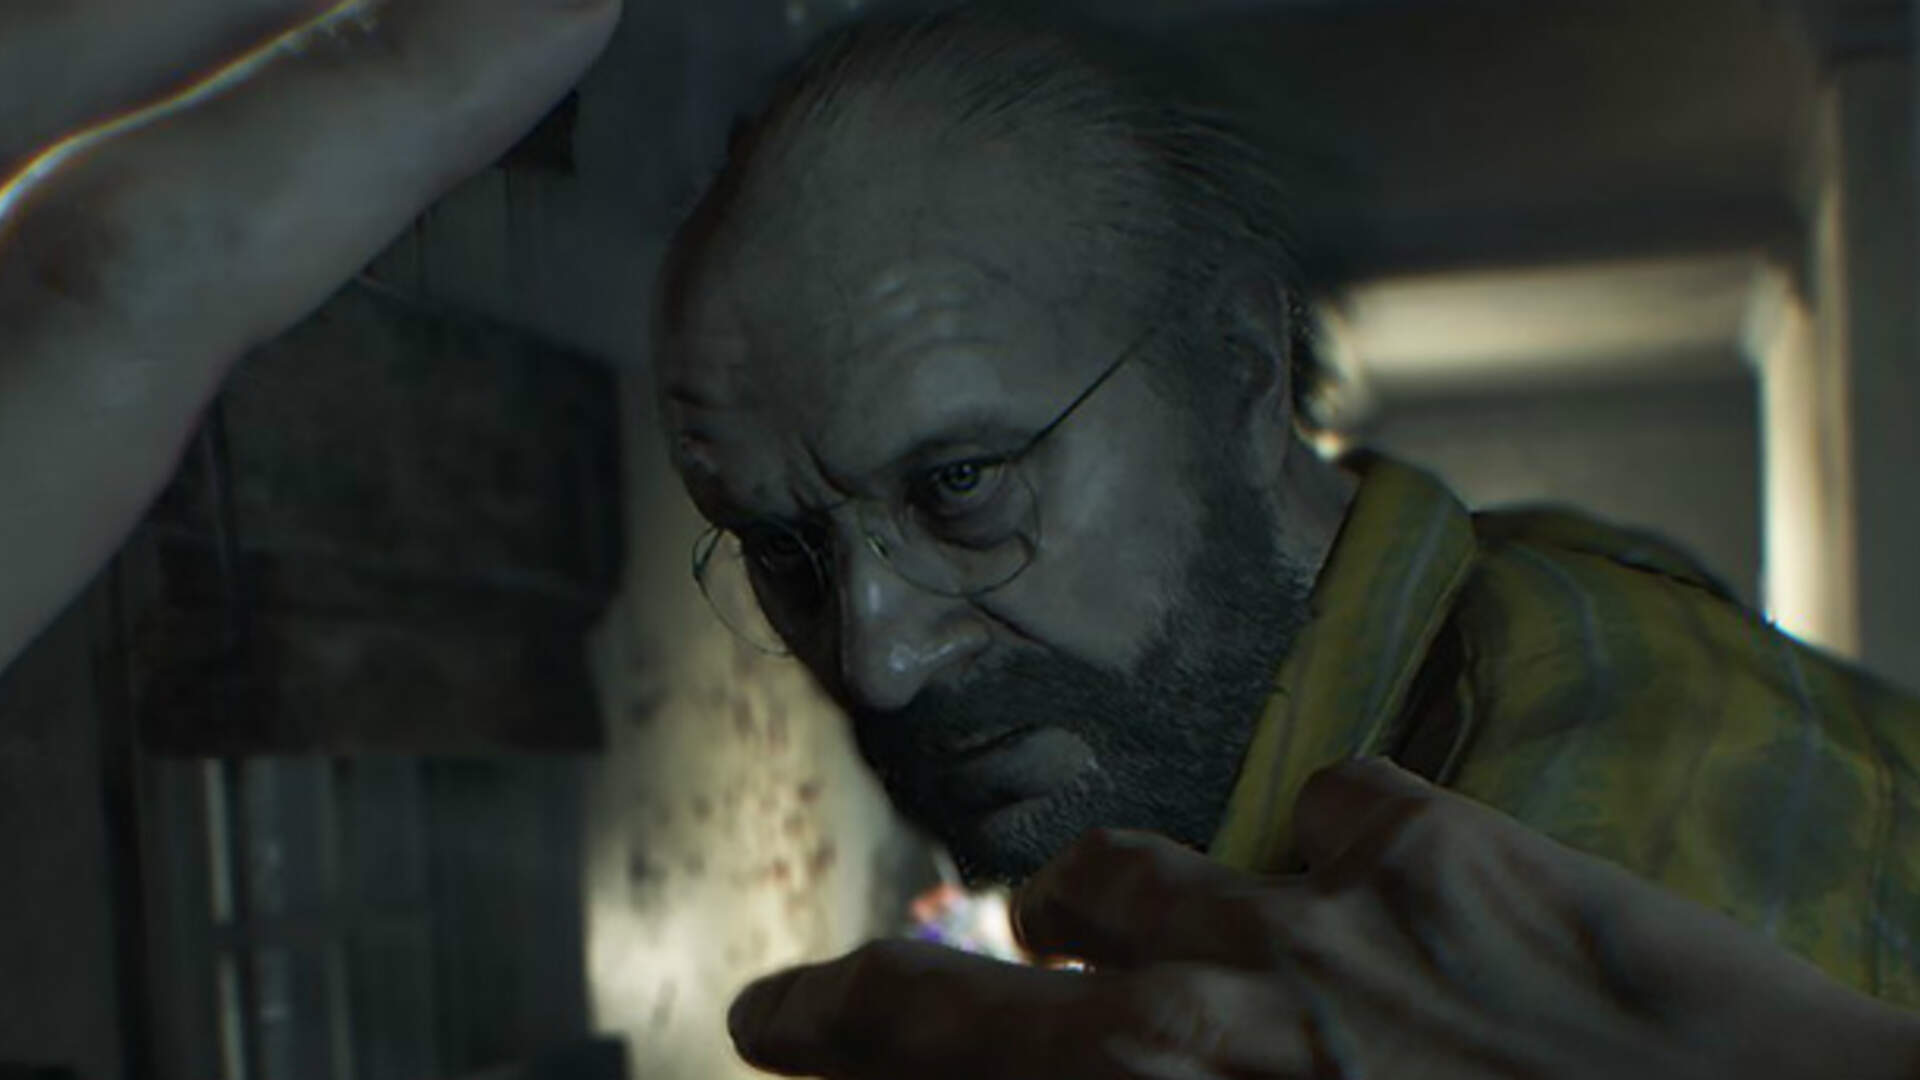 Resident Evil 7's Not a Hero DLC Not Arriving This Spring